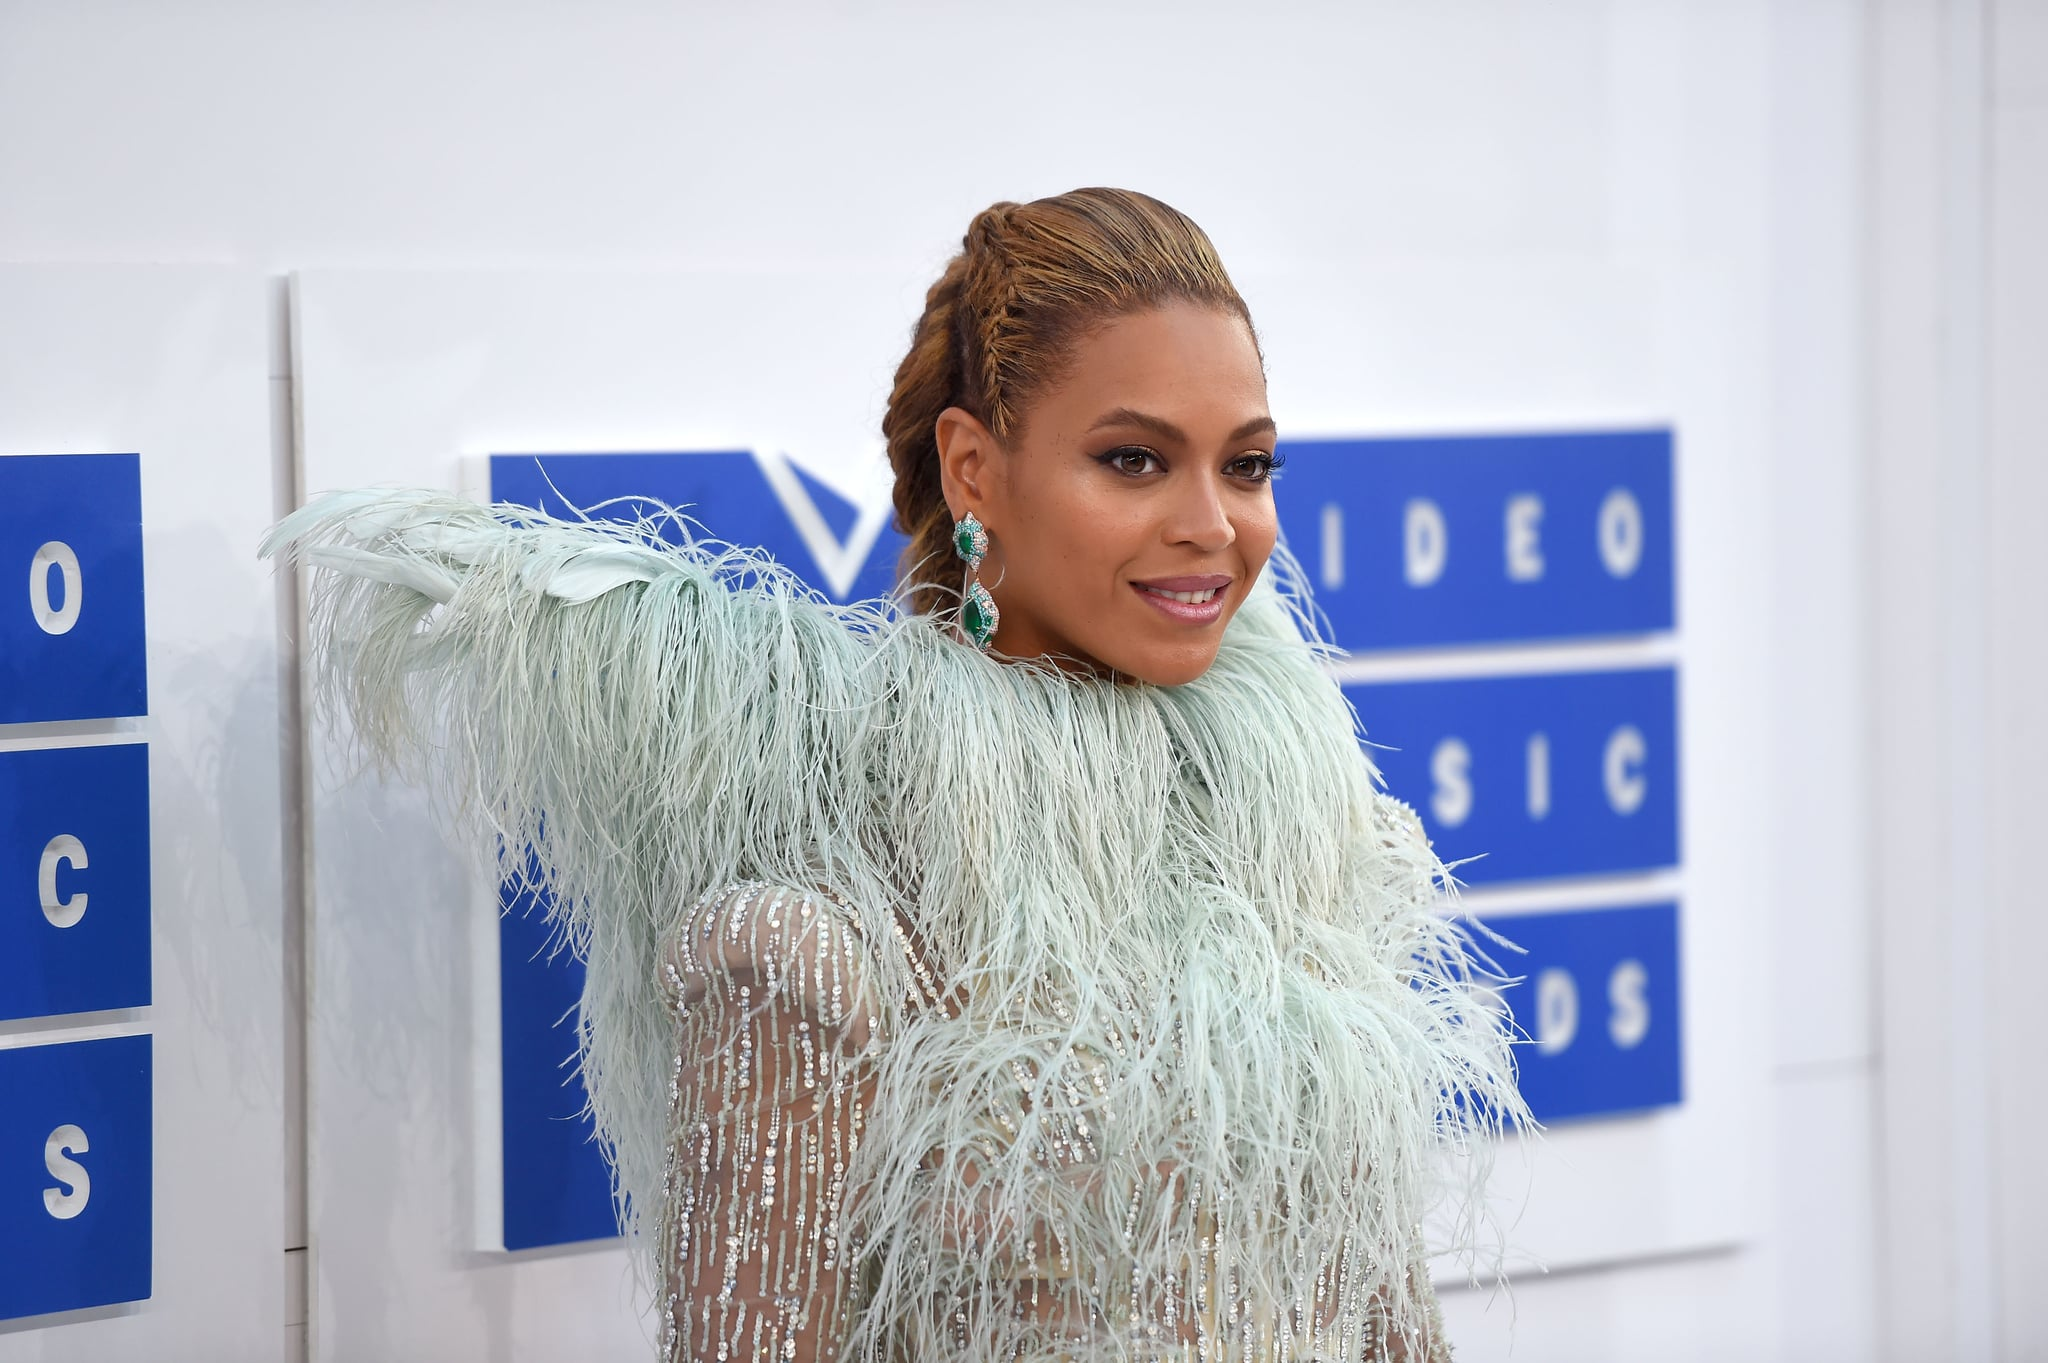 NEW YORK, NY - AUGUST 28:  Beyonce attends the 2016 MTV Video Music Awards at Madison Square Garden on August 28, 2016 in New York City.  (Photo by Nicholas Hunt/FilmMagic)